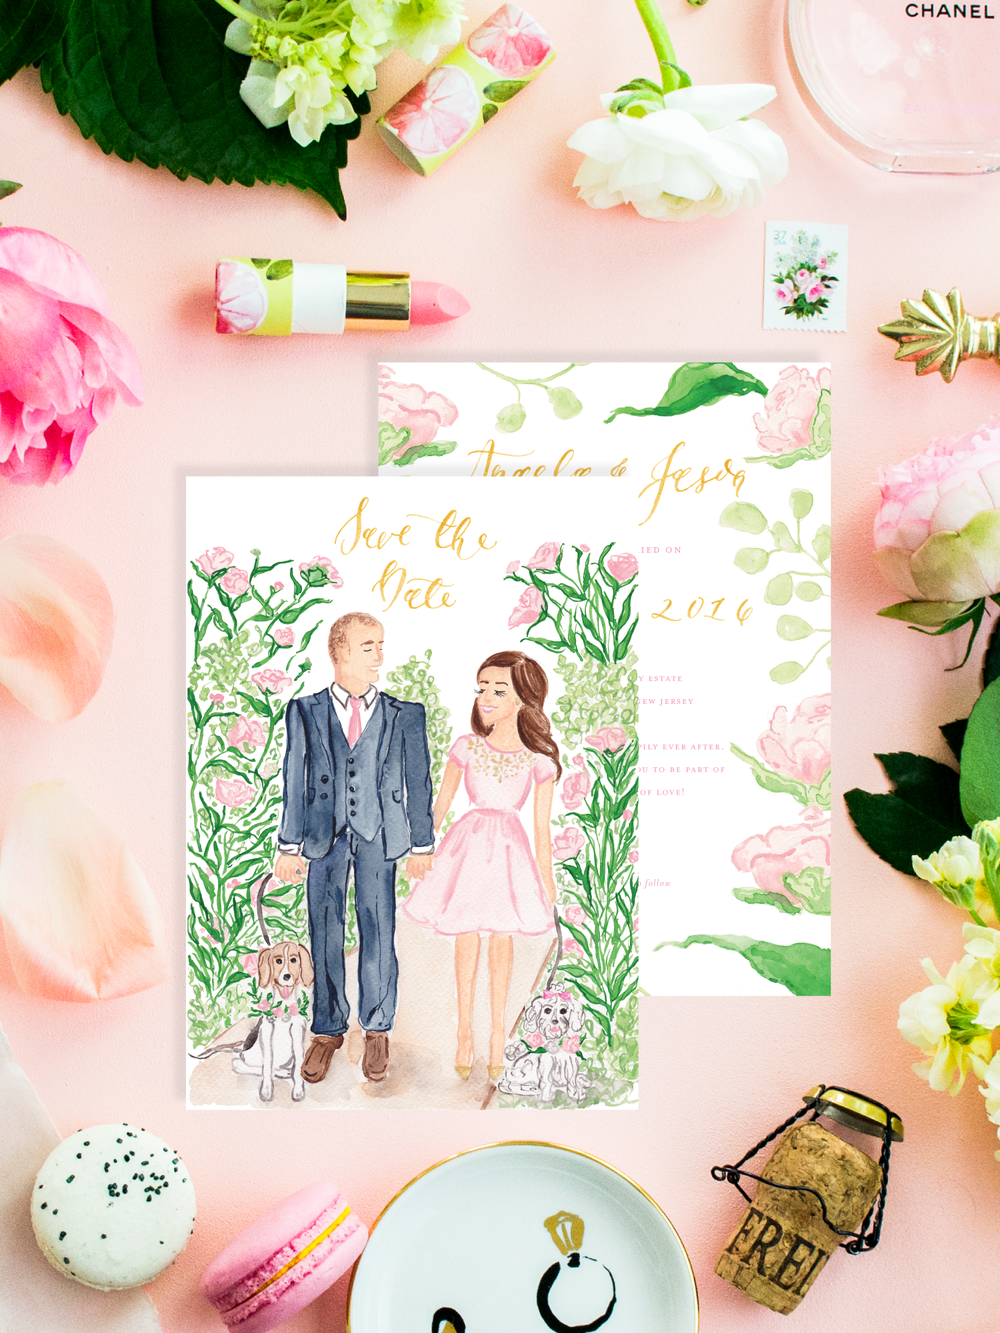 Watercolor-Floral-Save-the-Dates-by-Simply-Jessica-Marie-for-Angela-Aranda-_-Knoxville-Wedding-Stationery-Designer-Photo.png